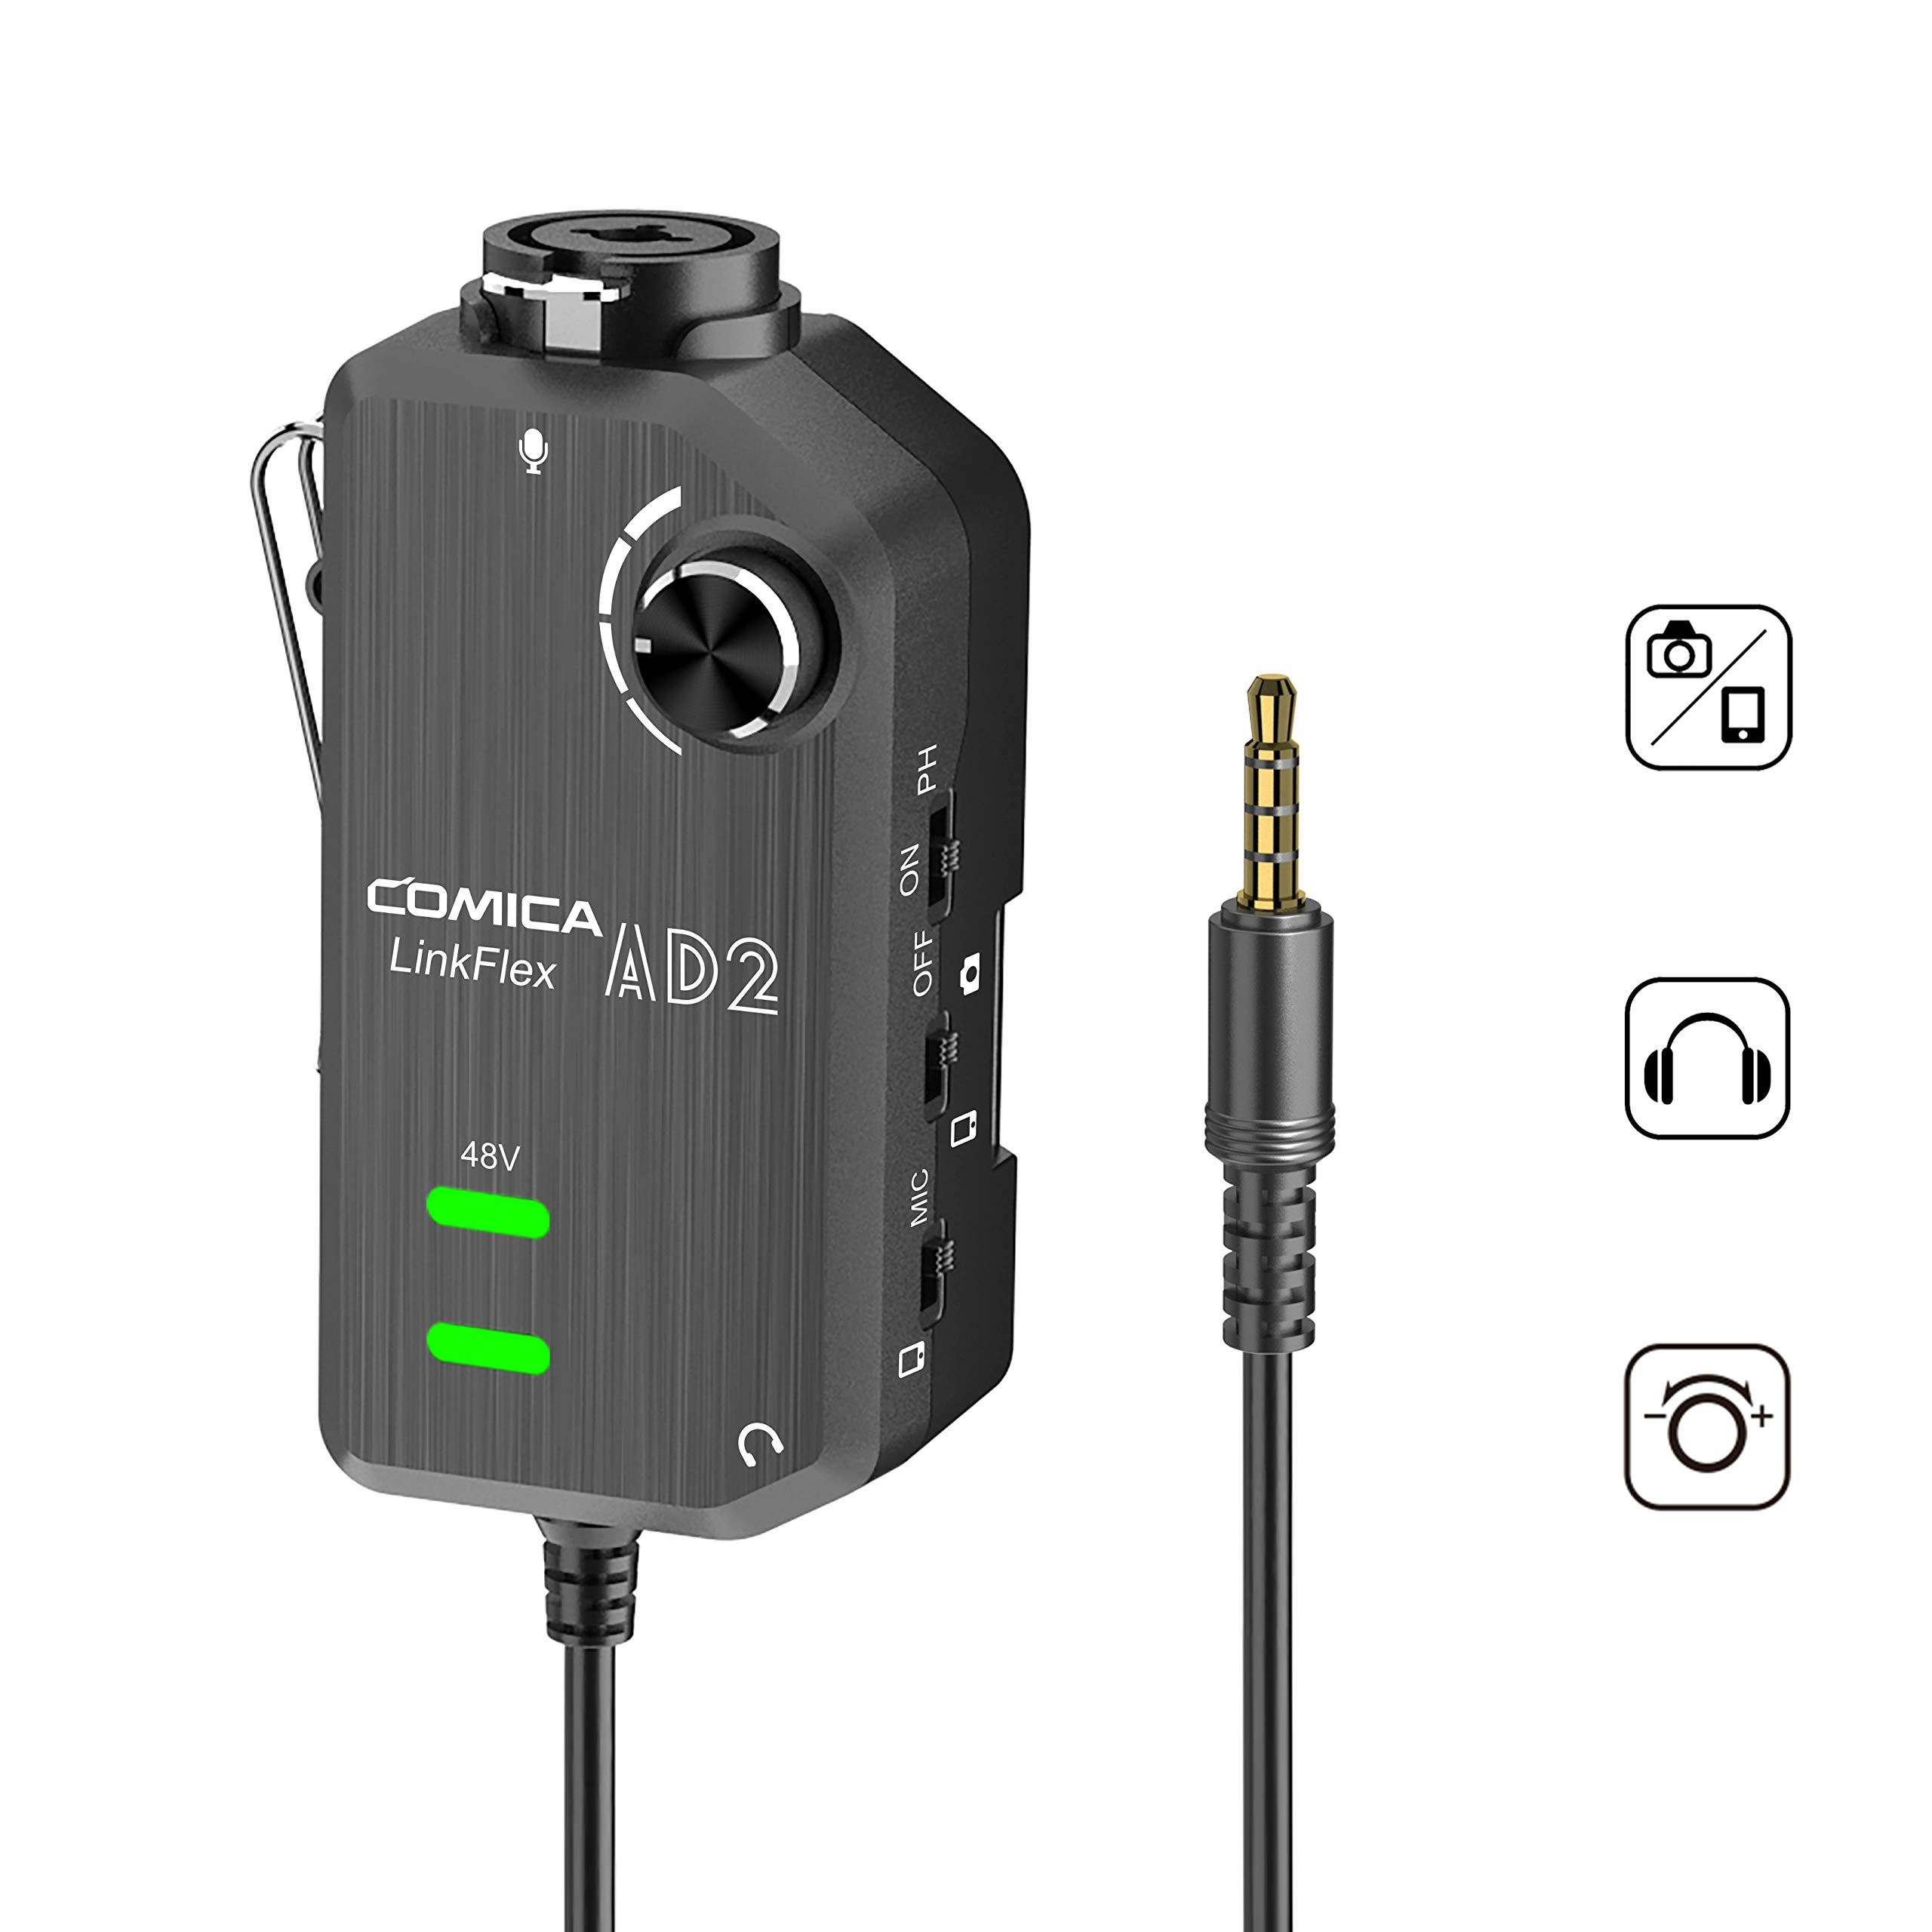 Comica LINKFLEX.AD2 XLR/ 6.35mm Microphone Preamp, with 48V Phantom Power, Real Time Monitor, XLR/Guitar Interface Adaptor for iPhone, iPad,Mac/PC, Android Device and DSLR Cameras